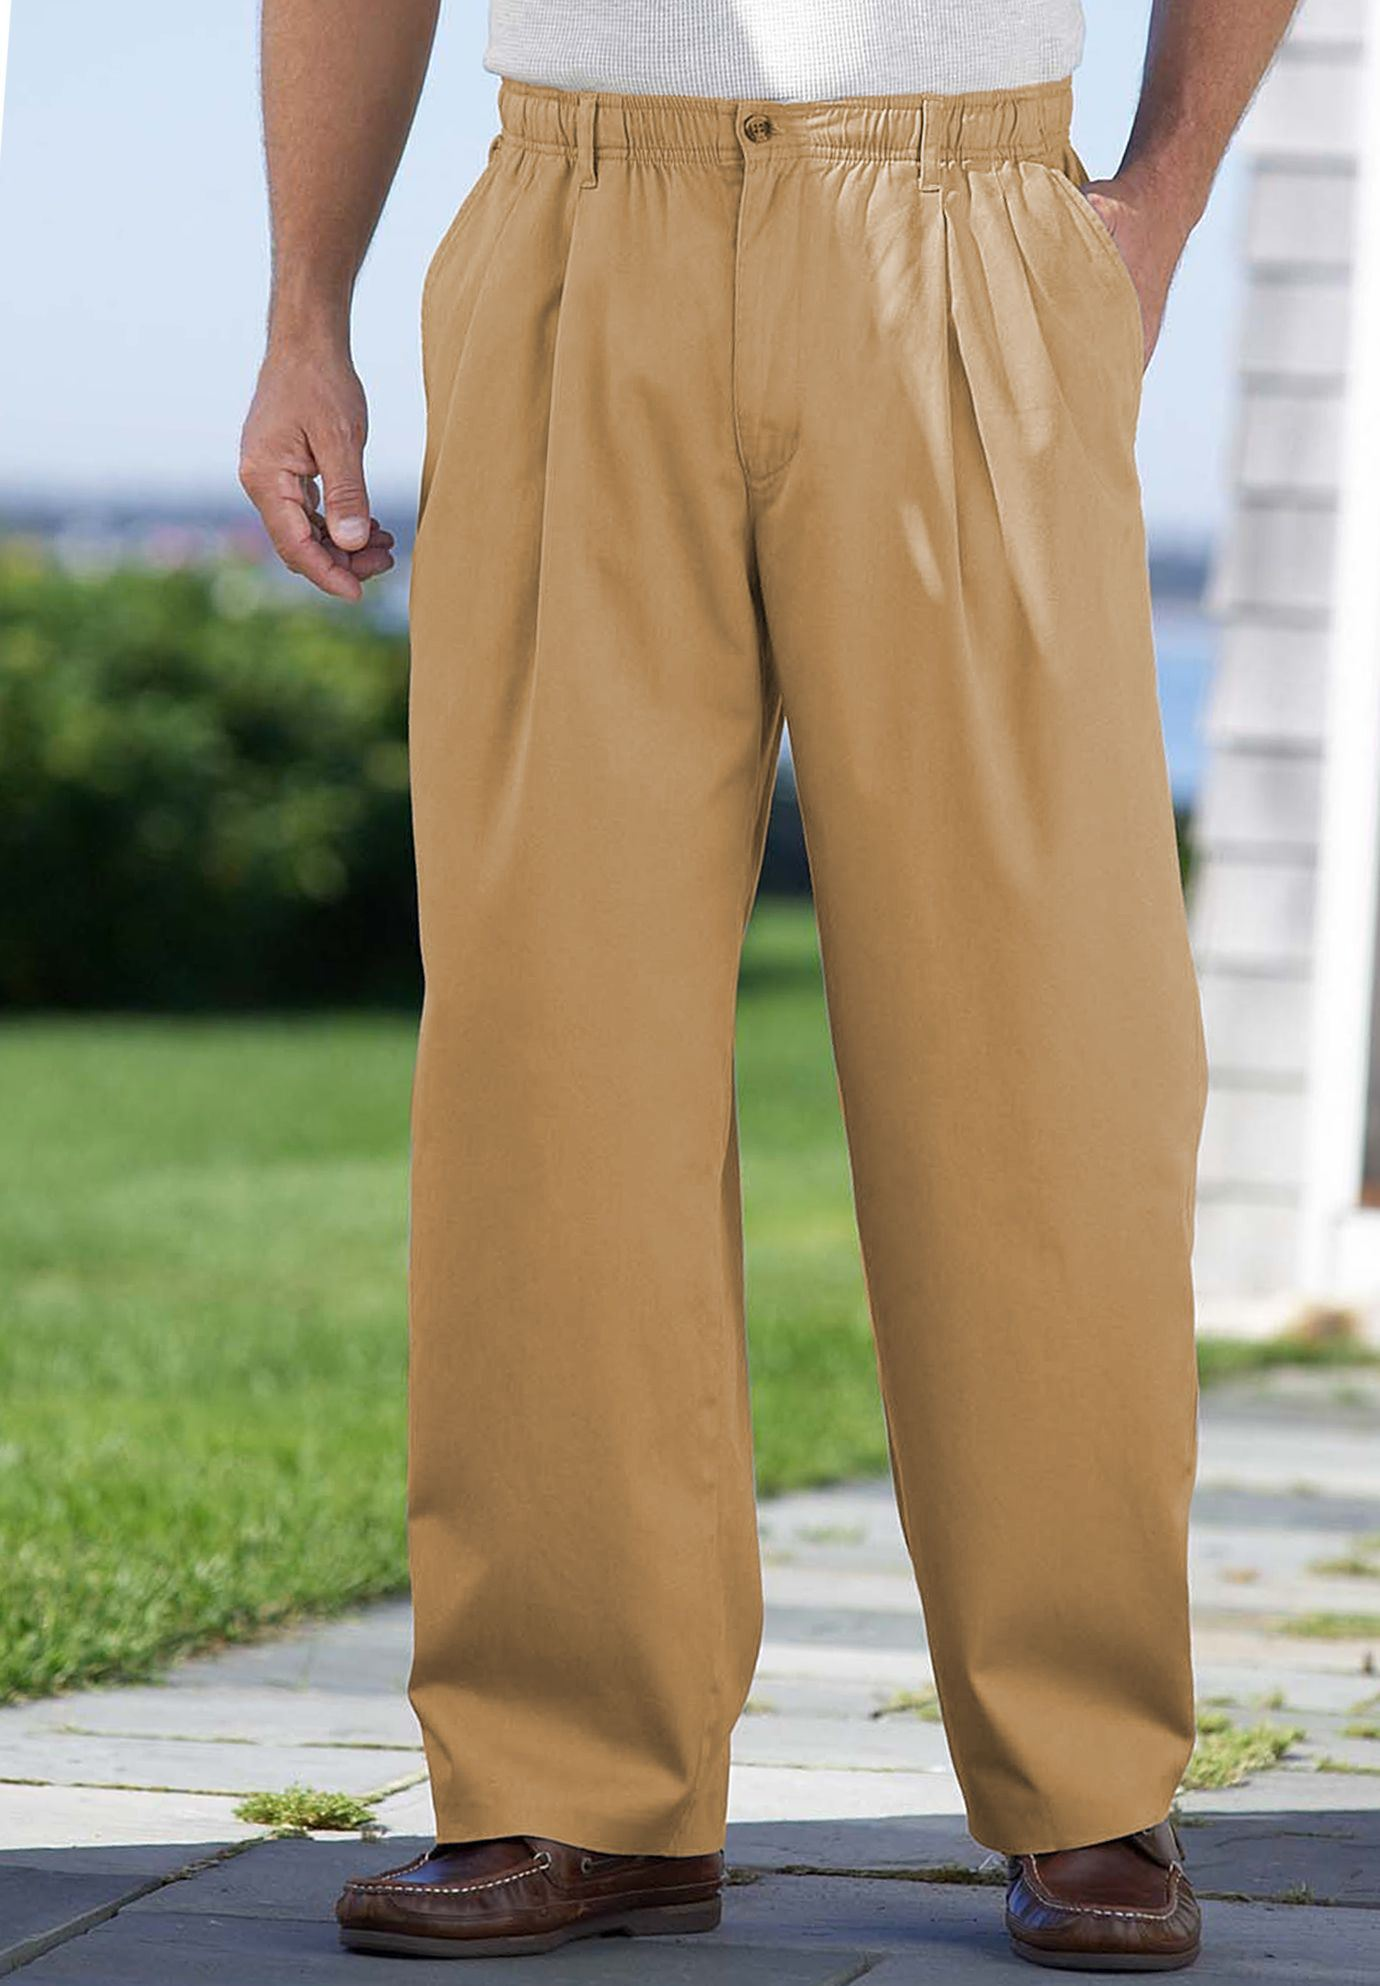 Knockarounds® Pleated Pants in Twill or Denim,